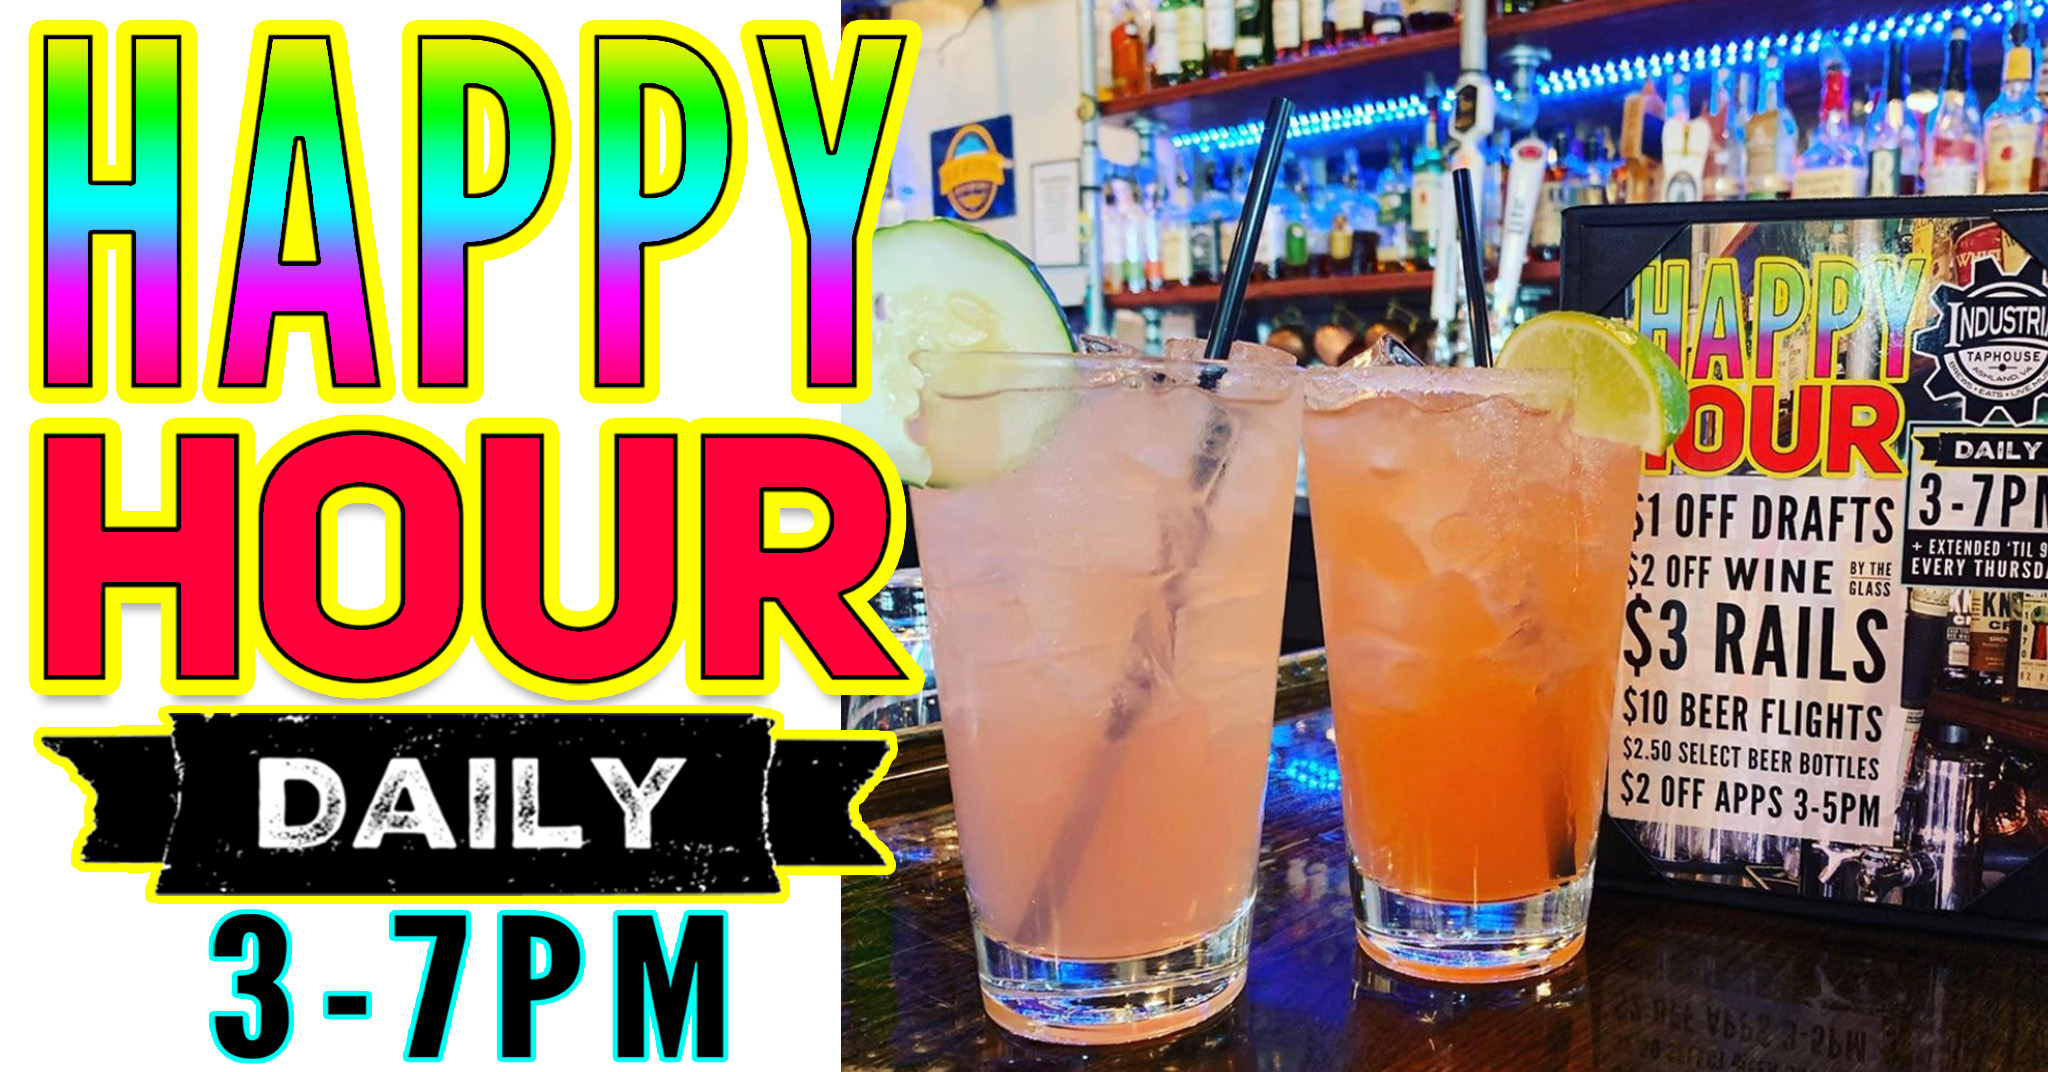 industrial Taphouse, happy hour, best restaurant, restaurants near me, ashland restaurant, kreggers, Martys, sports page, takeout, burgers, beer, craft beer, local beer, wine on tap, specials, lunch, dinner, brunch, live music, bar, best bar, rva, cotu, center of the universe, ashland eats, rva eats, local eats, scratchmade, American restaurant, Mechanicsville restaurant, Atlee, kings charter, cocktails, pork rinds, dog friendly dining, patio dining, catering, caterer, banquet room